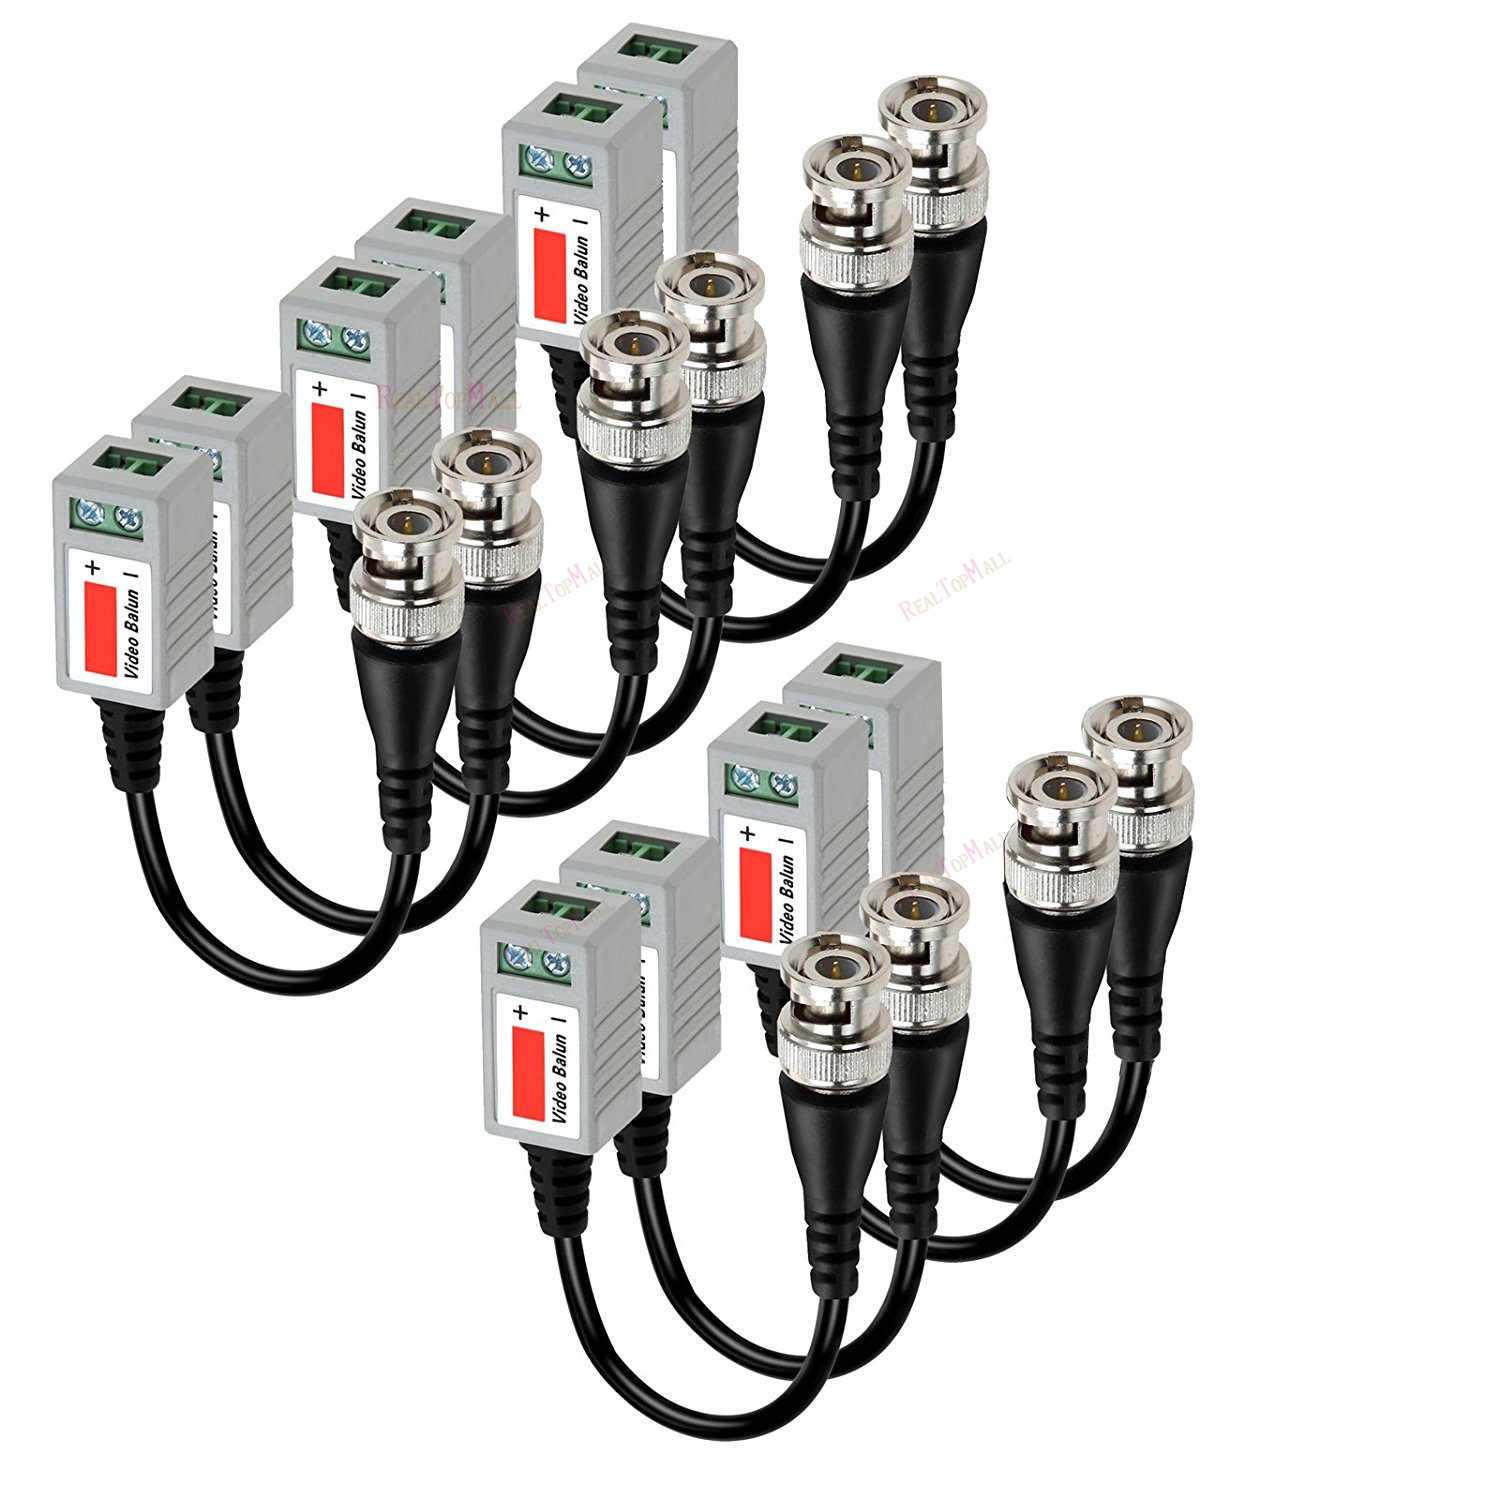 New 10 Pcs 5 Pairs Cctv Camera Passive Video Balun Bnc